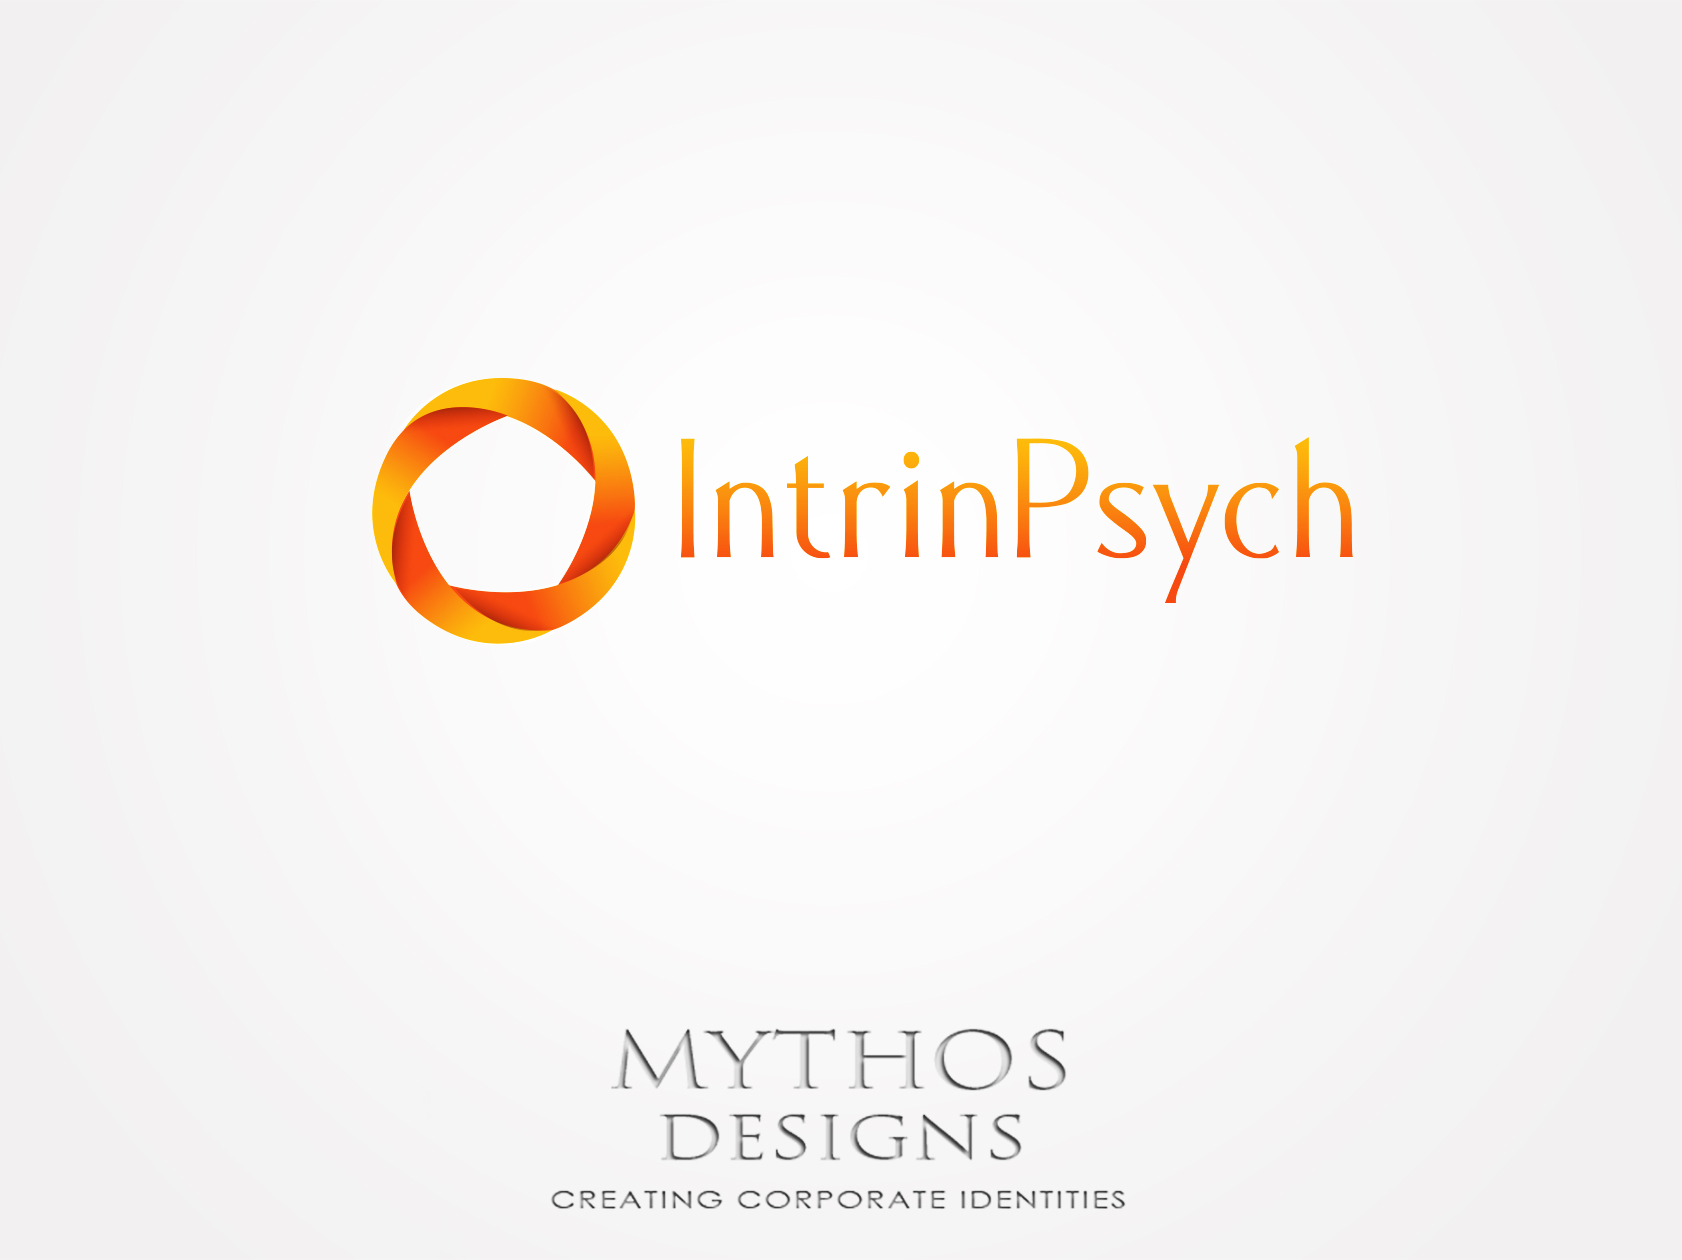 Logo Design by Mythos Designs - Entry No. 69 in the Logo Design Contest New Logo Design for IntrinPsych.